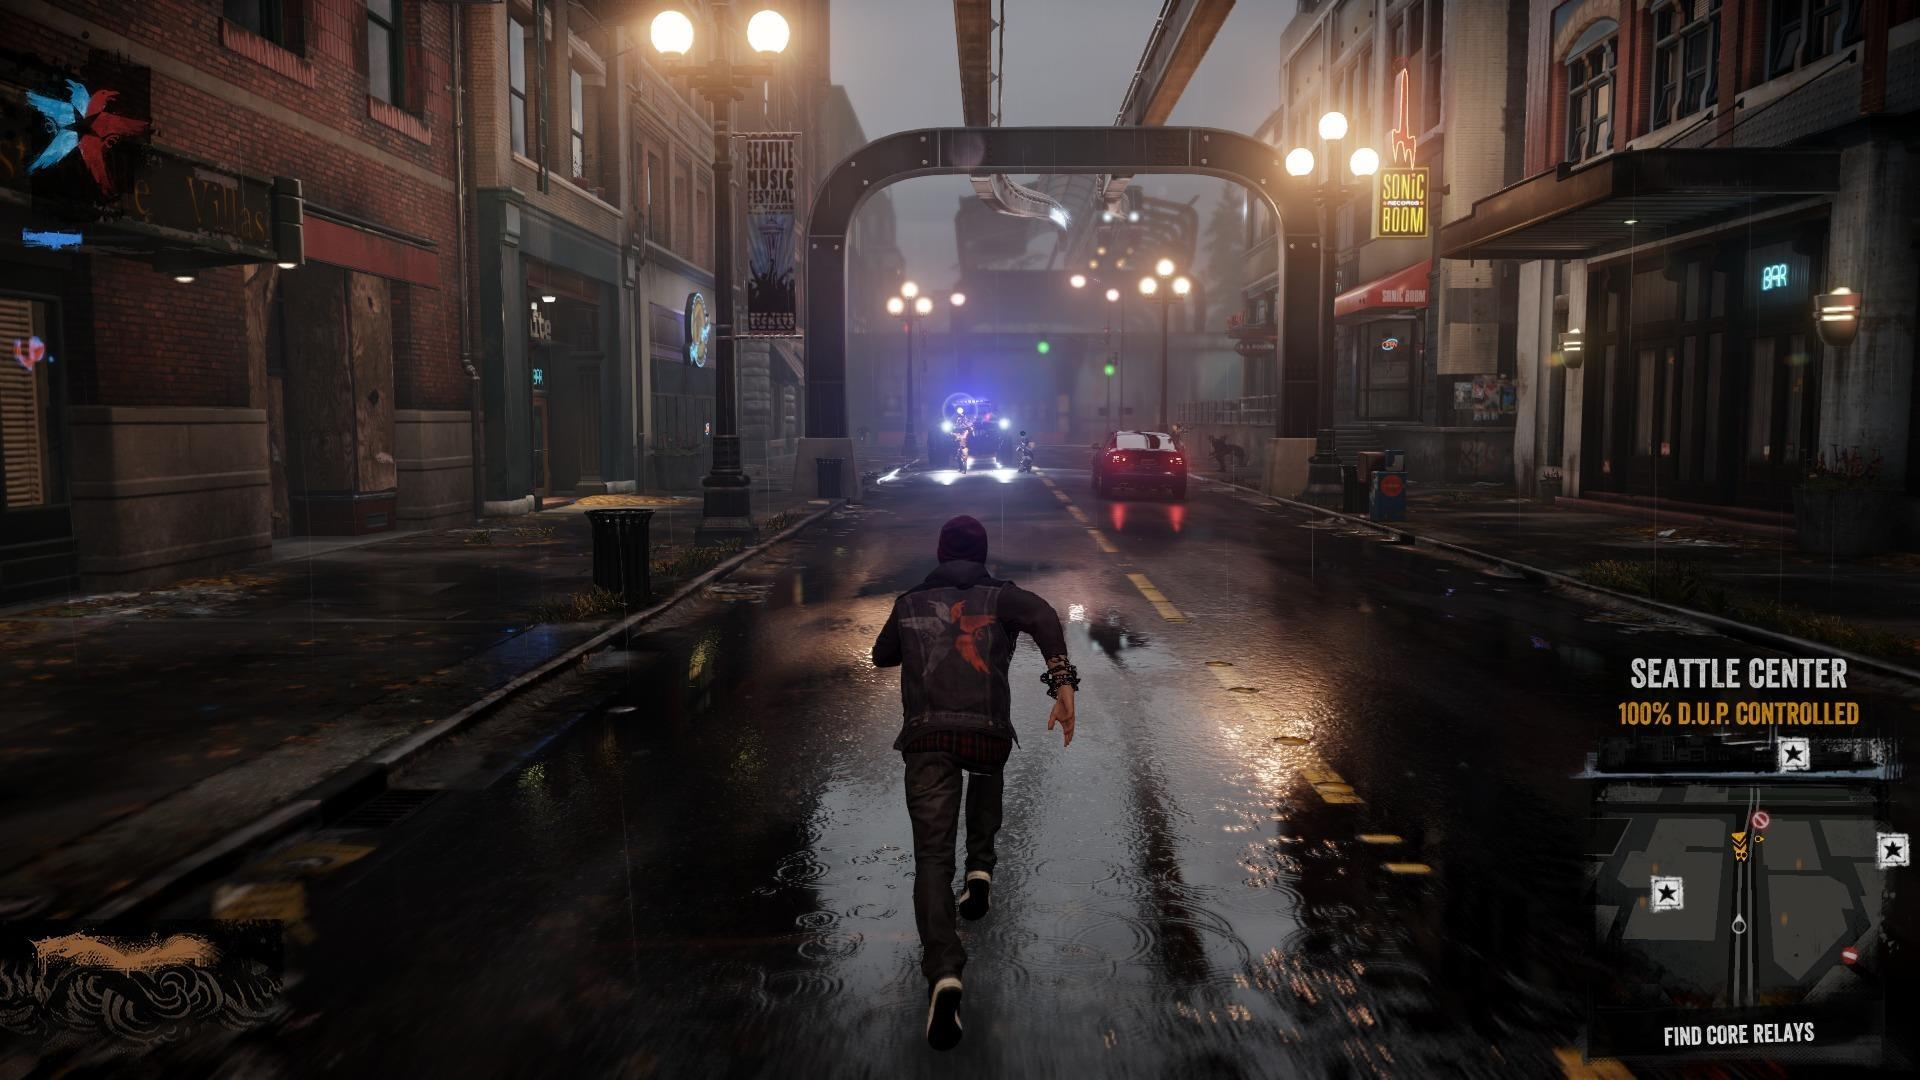 image_316549_full.jpg - inFamous: Second Son